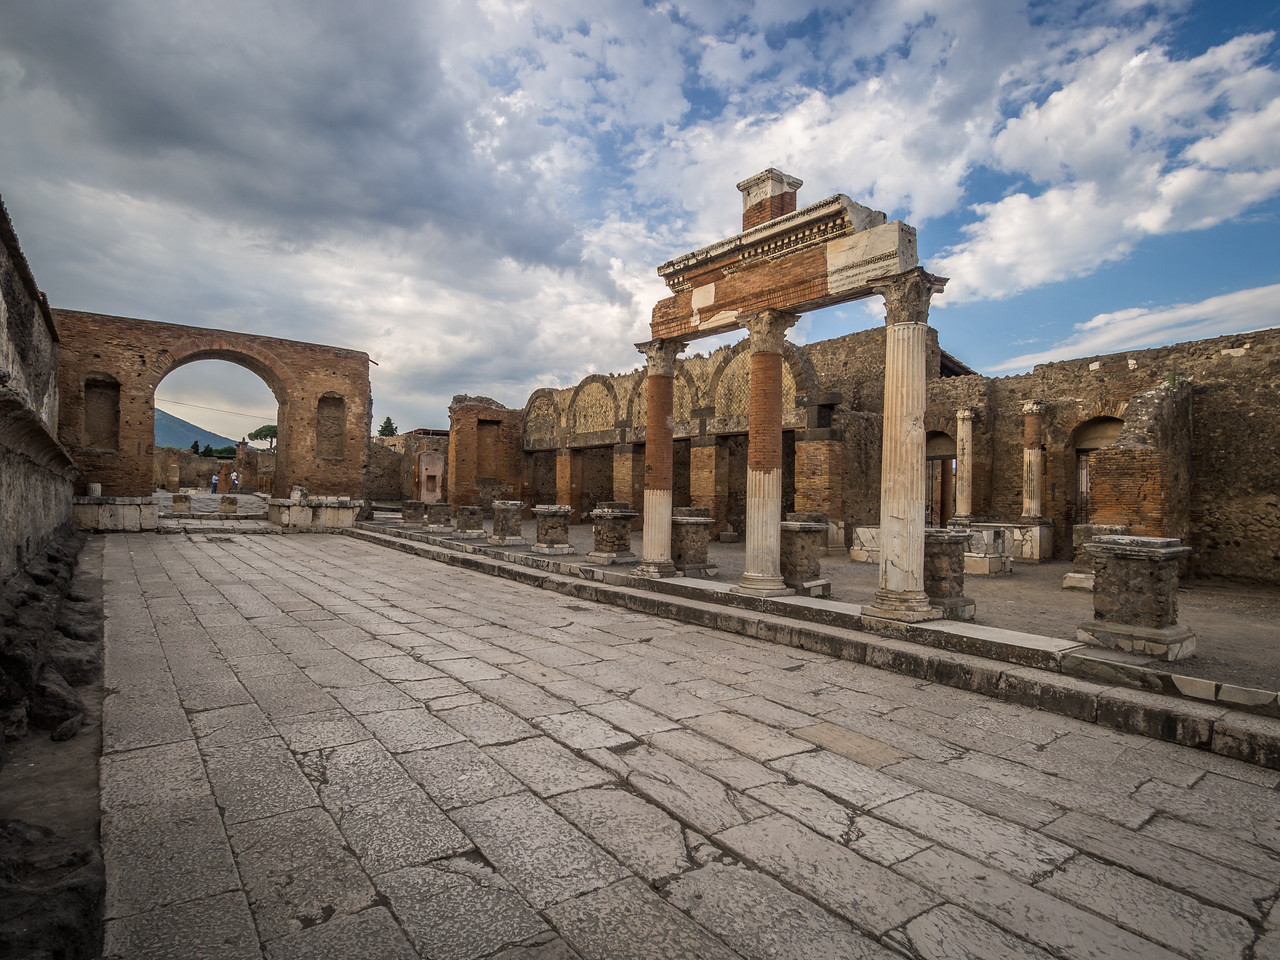 Downtown Pompeii